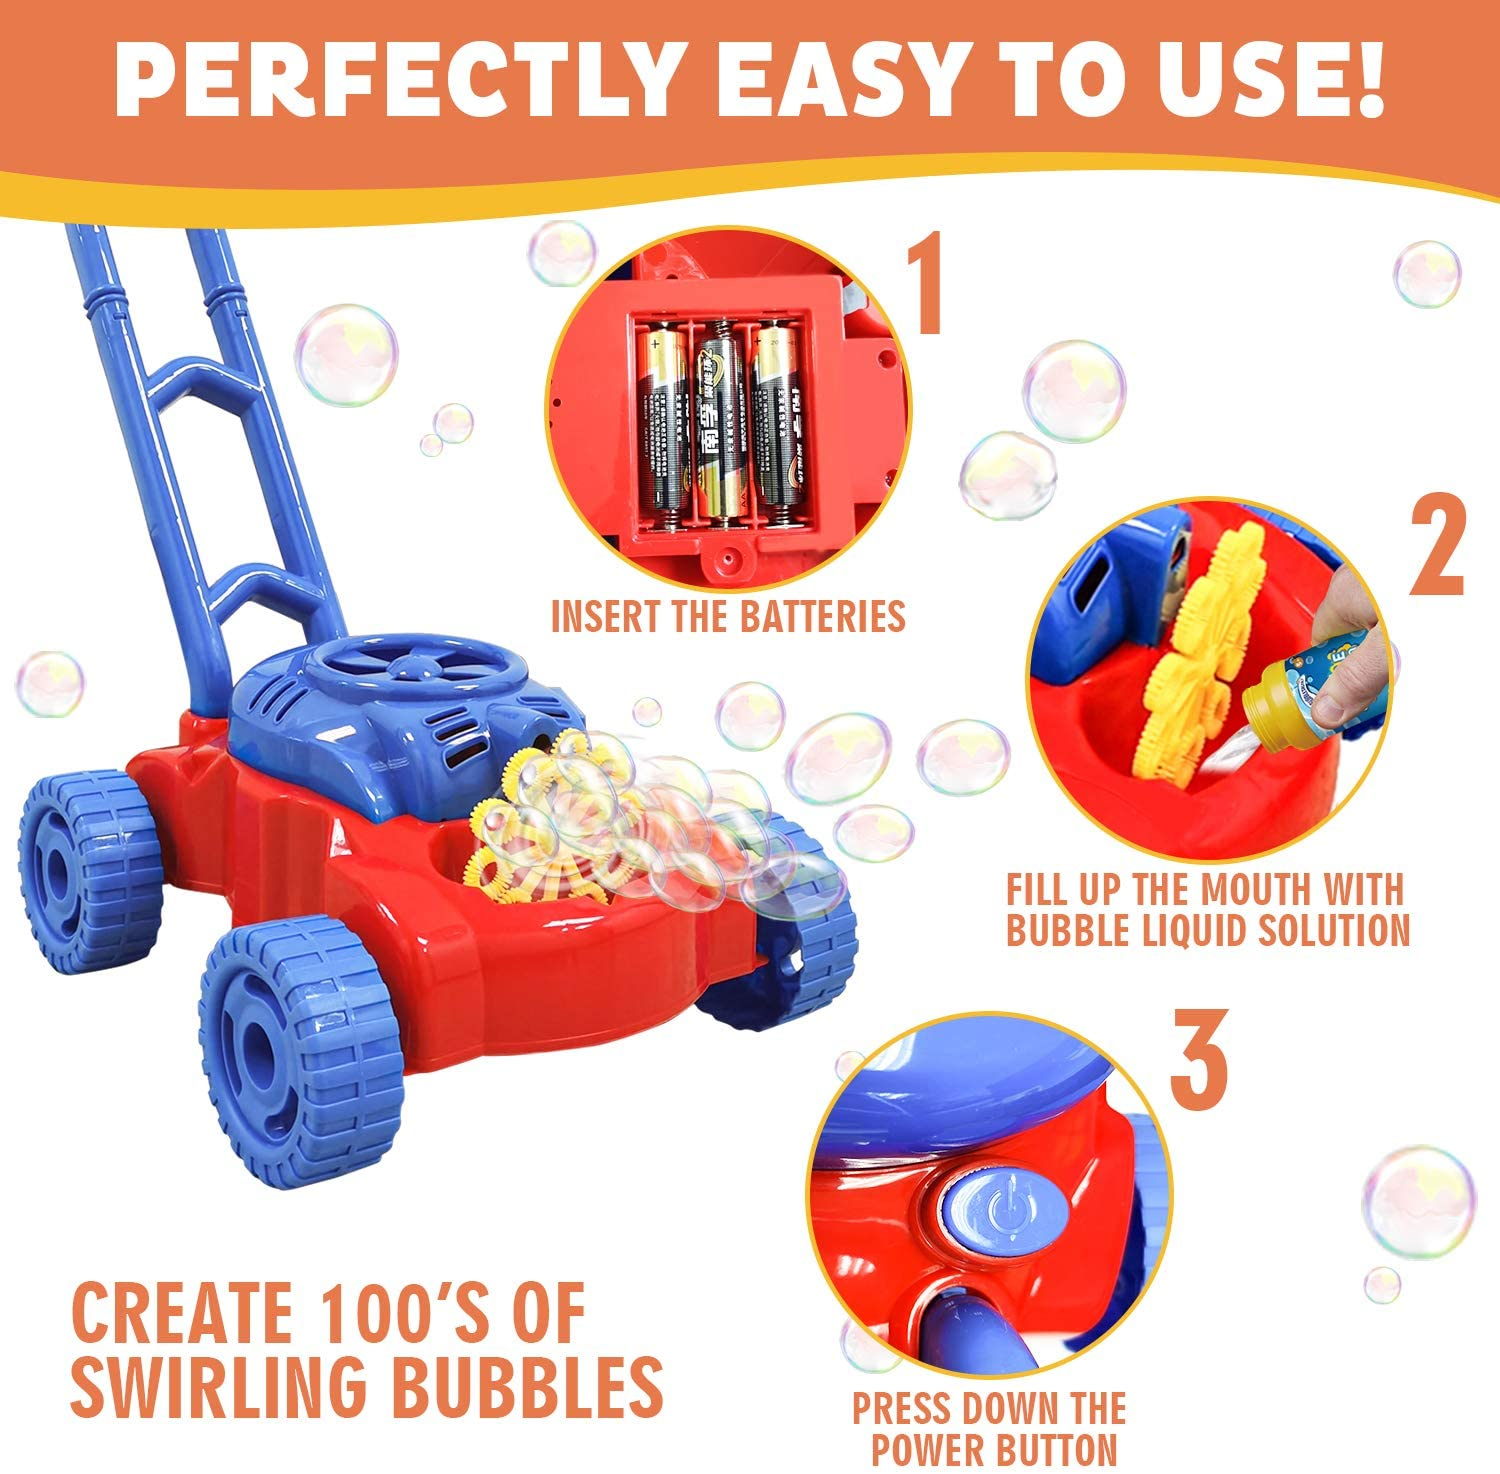 WhizBuilders Bubble Machine Lawn Mower